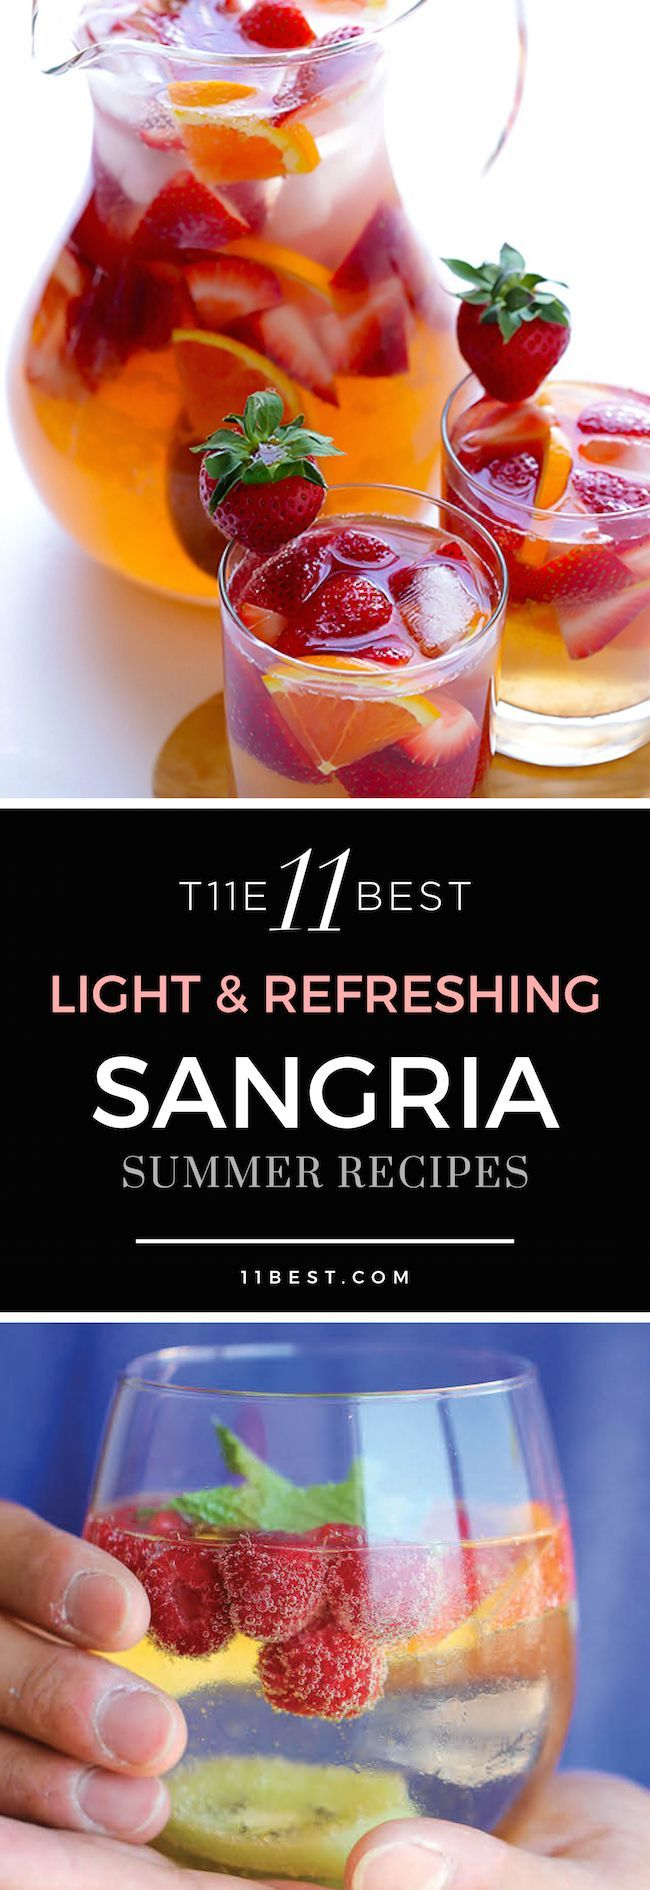 The 11 Best Refreshing Sangria Summer Recipes